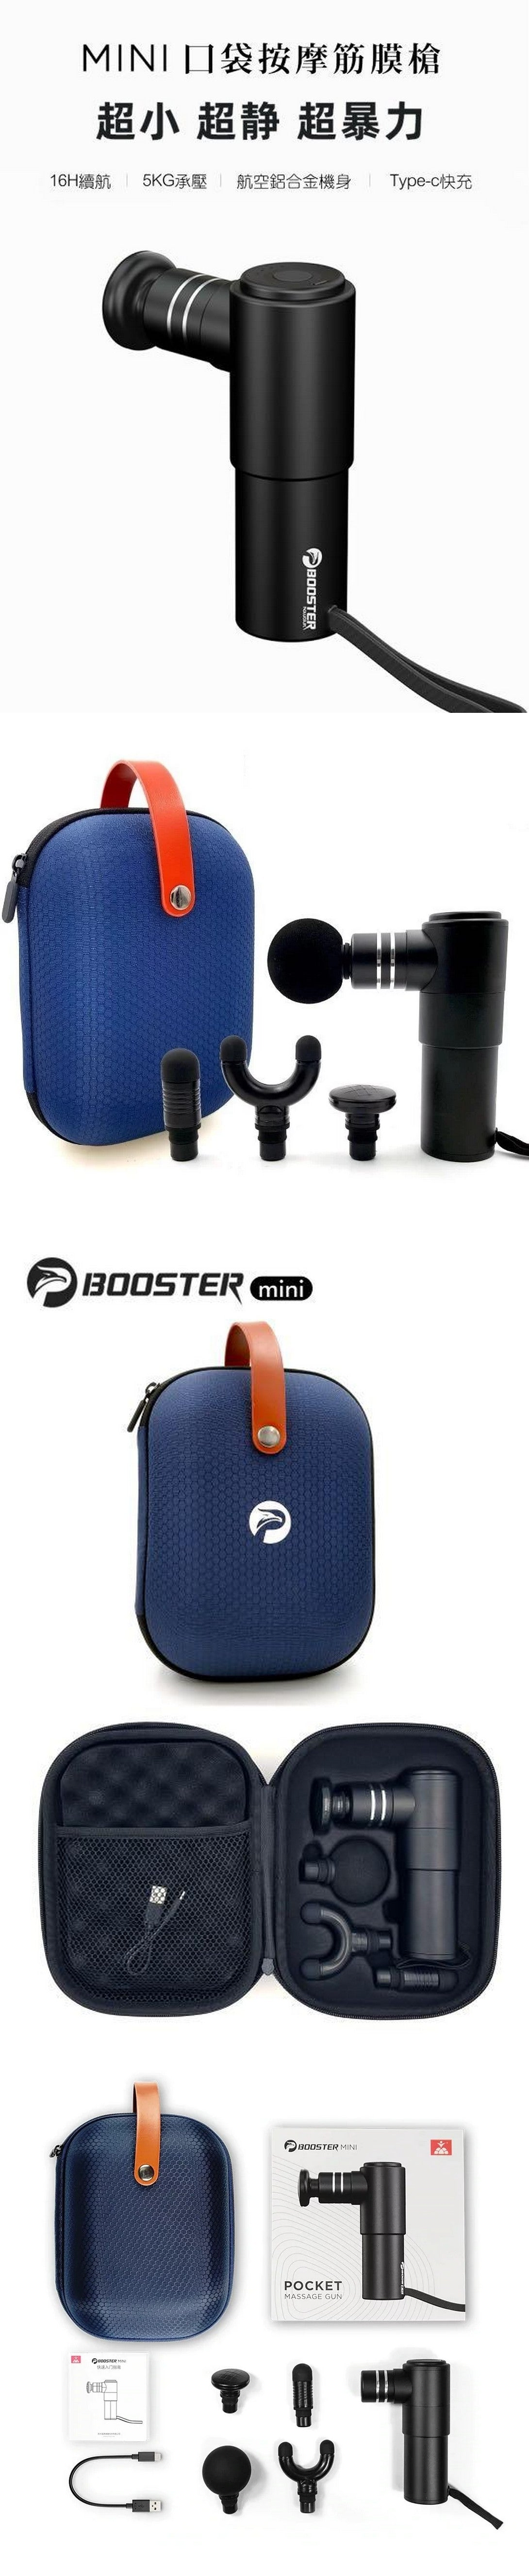 booster-mini-pocket-massage-gun